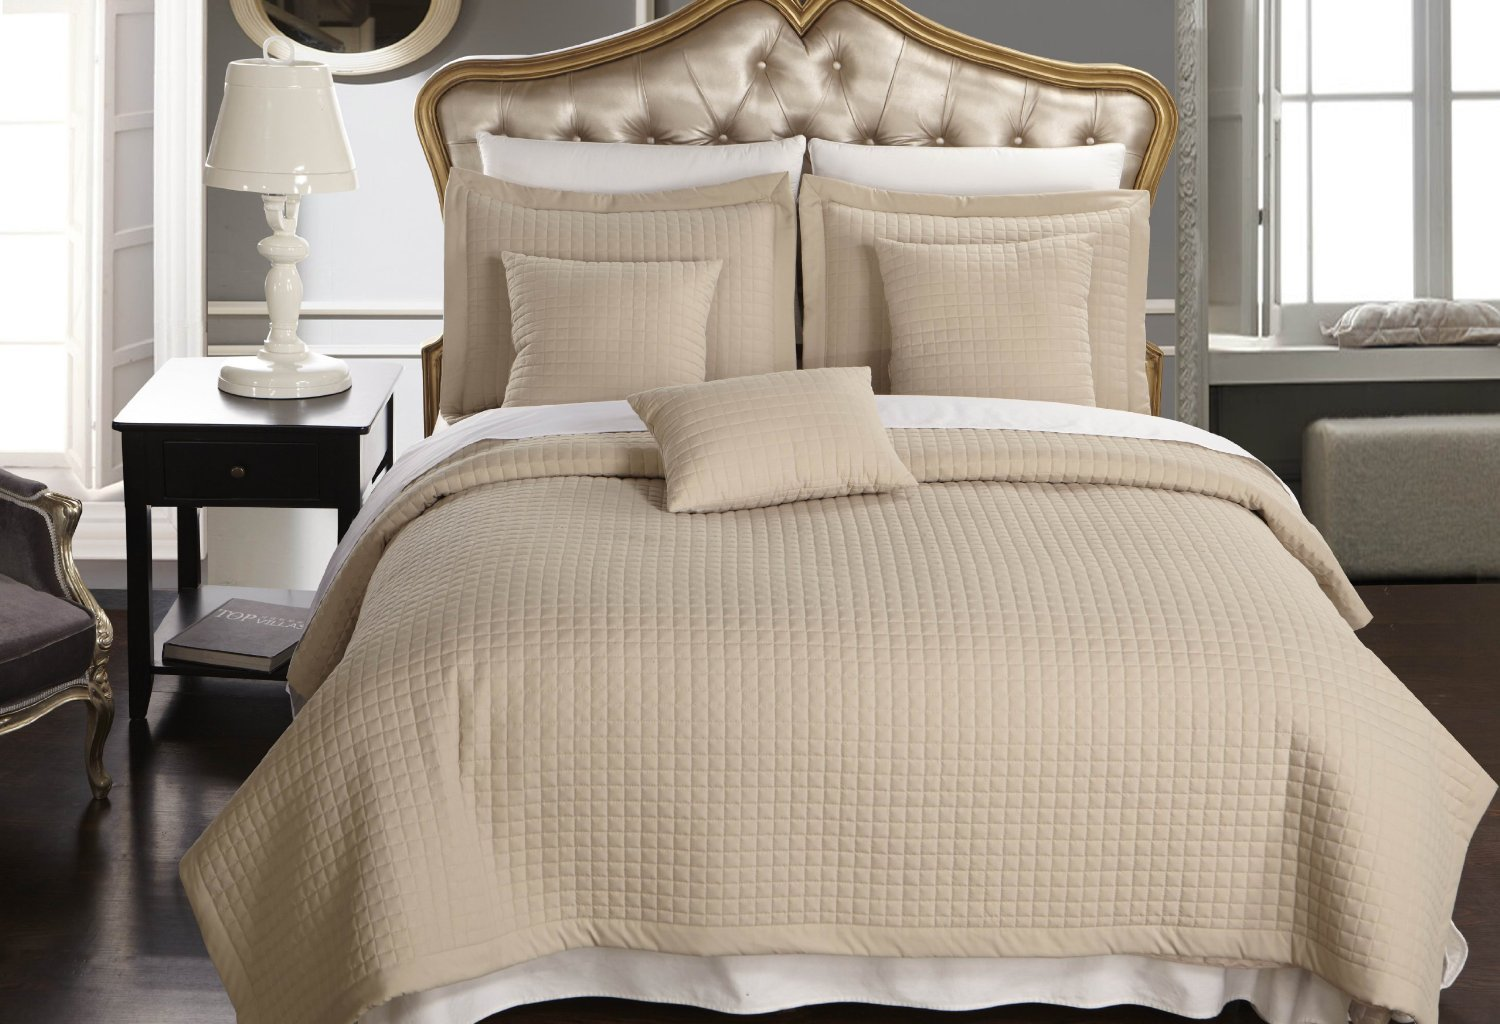 Amazon.com: California King Size Linen / Beige Coverlet 10pc Bedding Set,  Luxury Microfiber Checkered Quilt, Pillows, And Solid Sheets By Royal  Hotel: Home ...